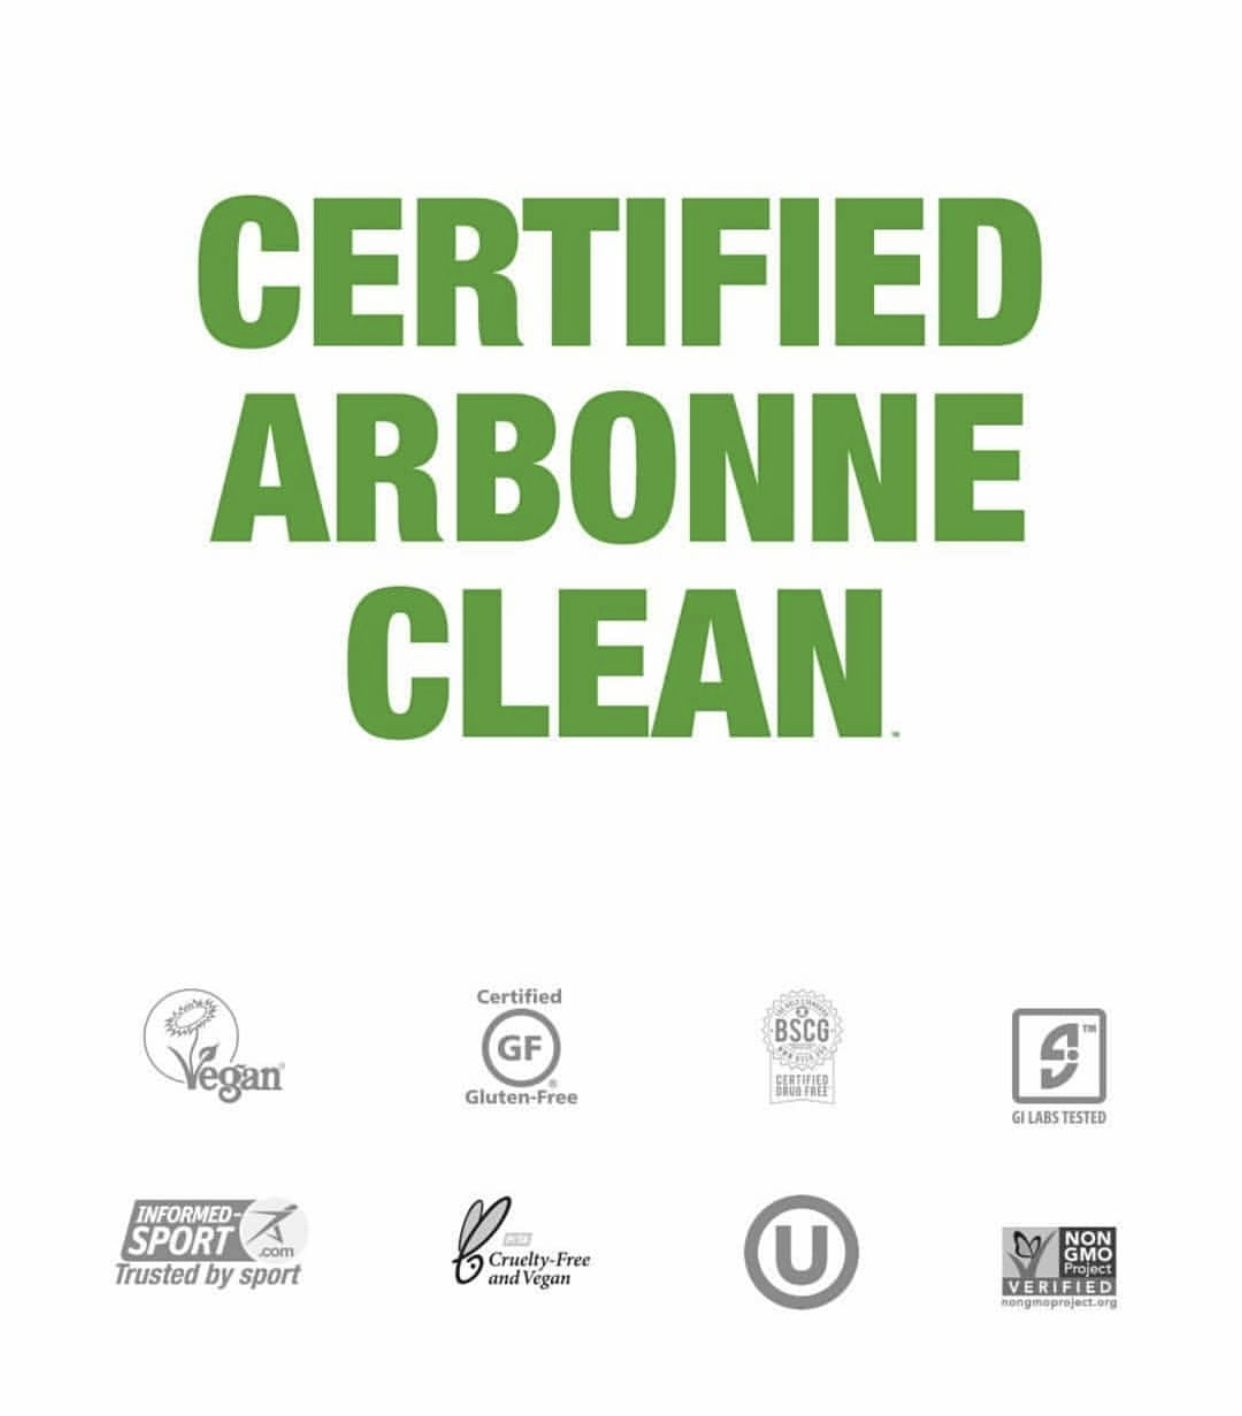 Certified Arbonne Clean Means That We Not Only Have Tons Of